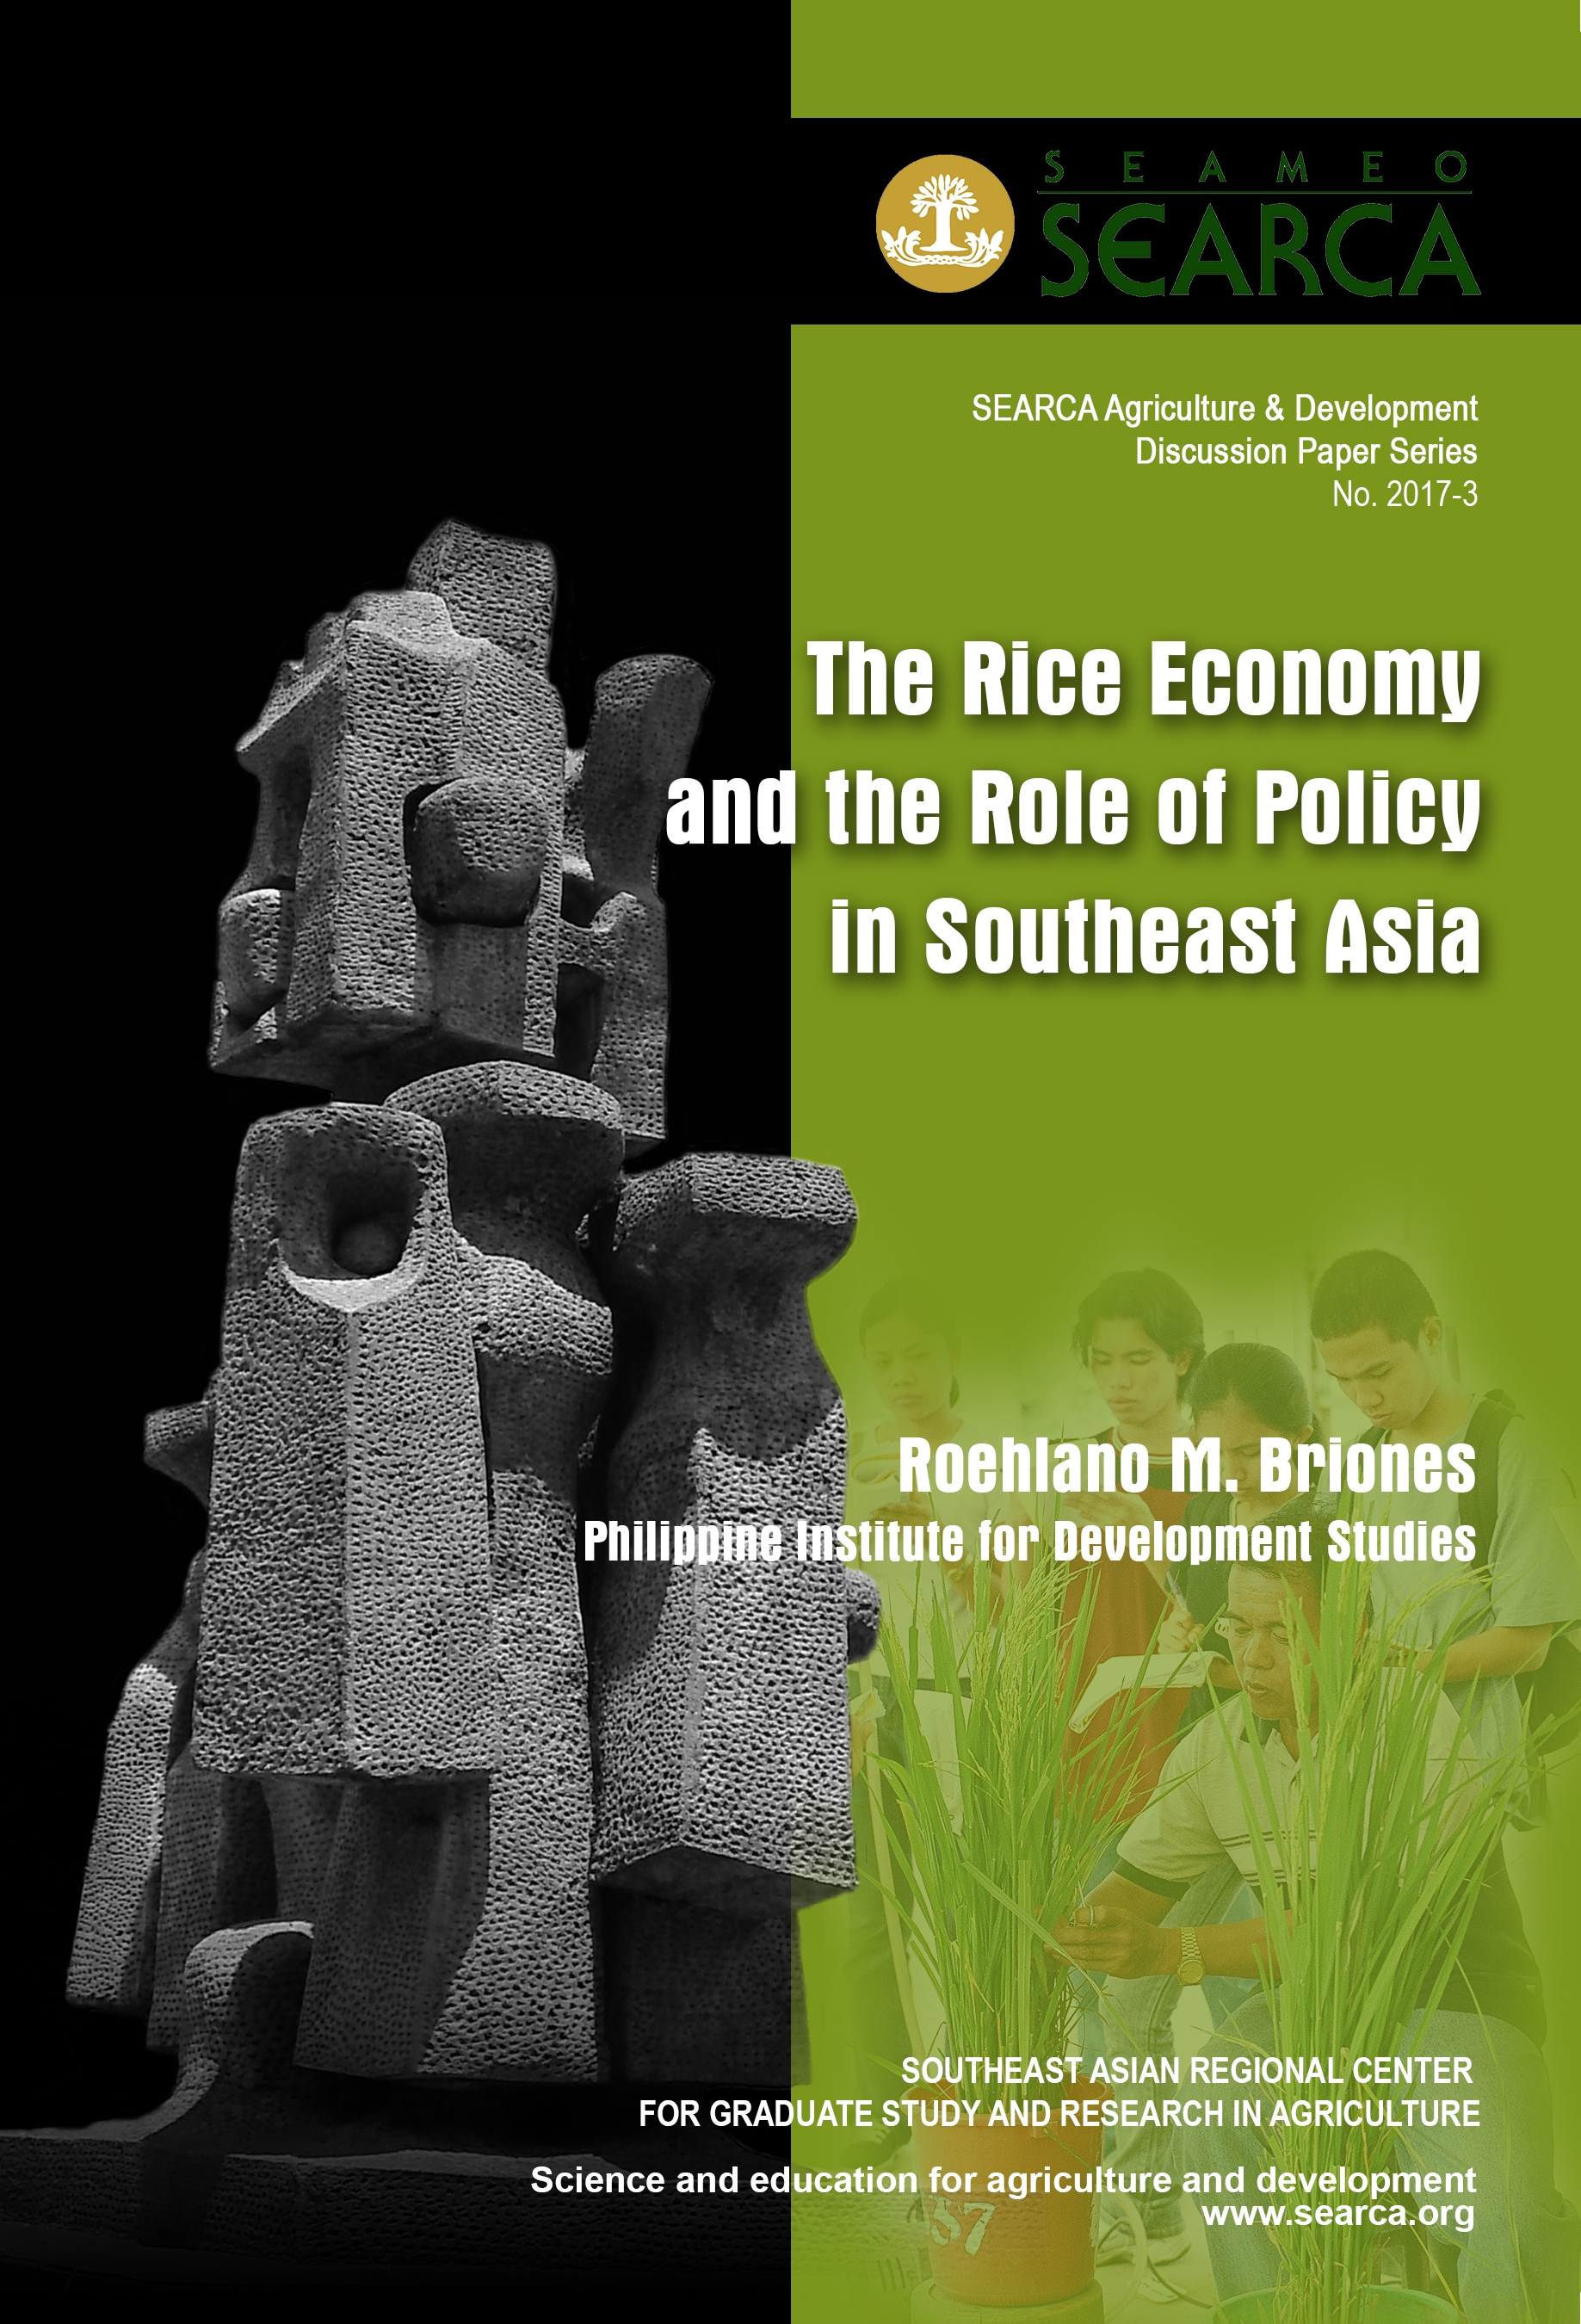 The Rice Economy and the Role of Policy in Southeast Asia